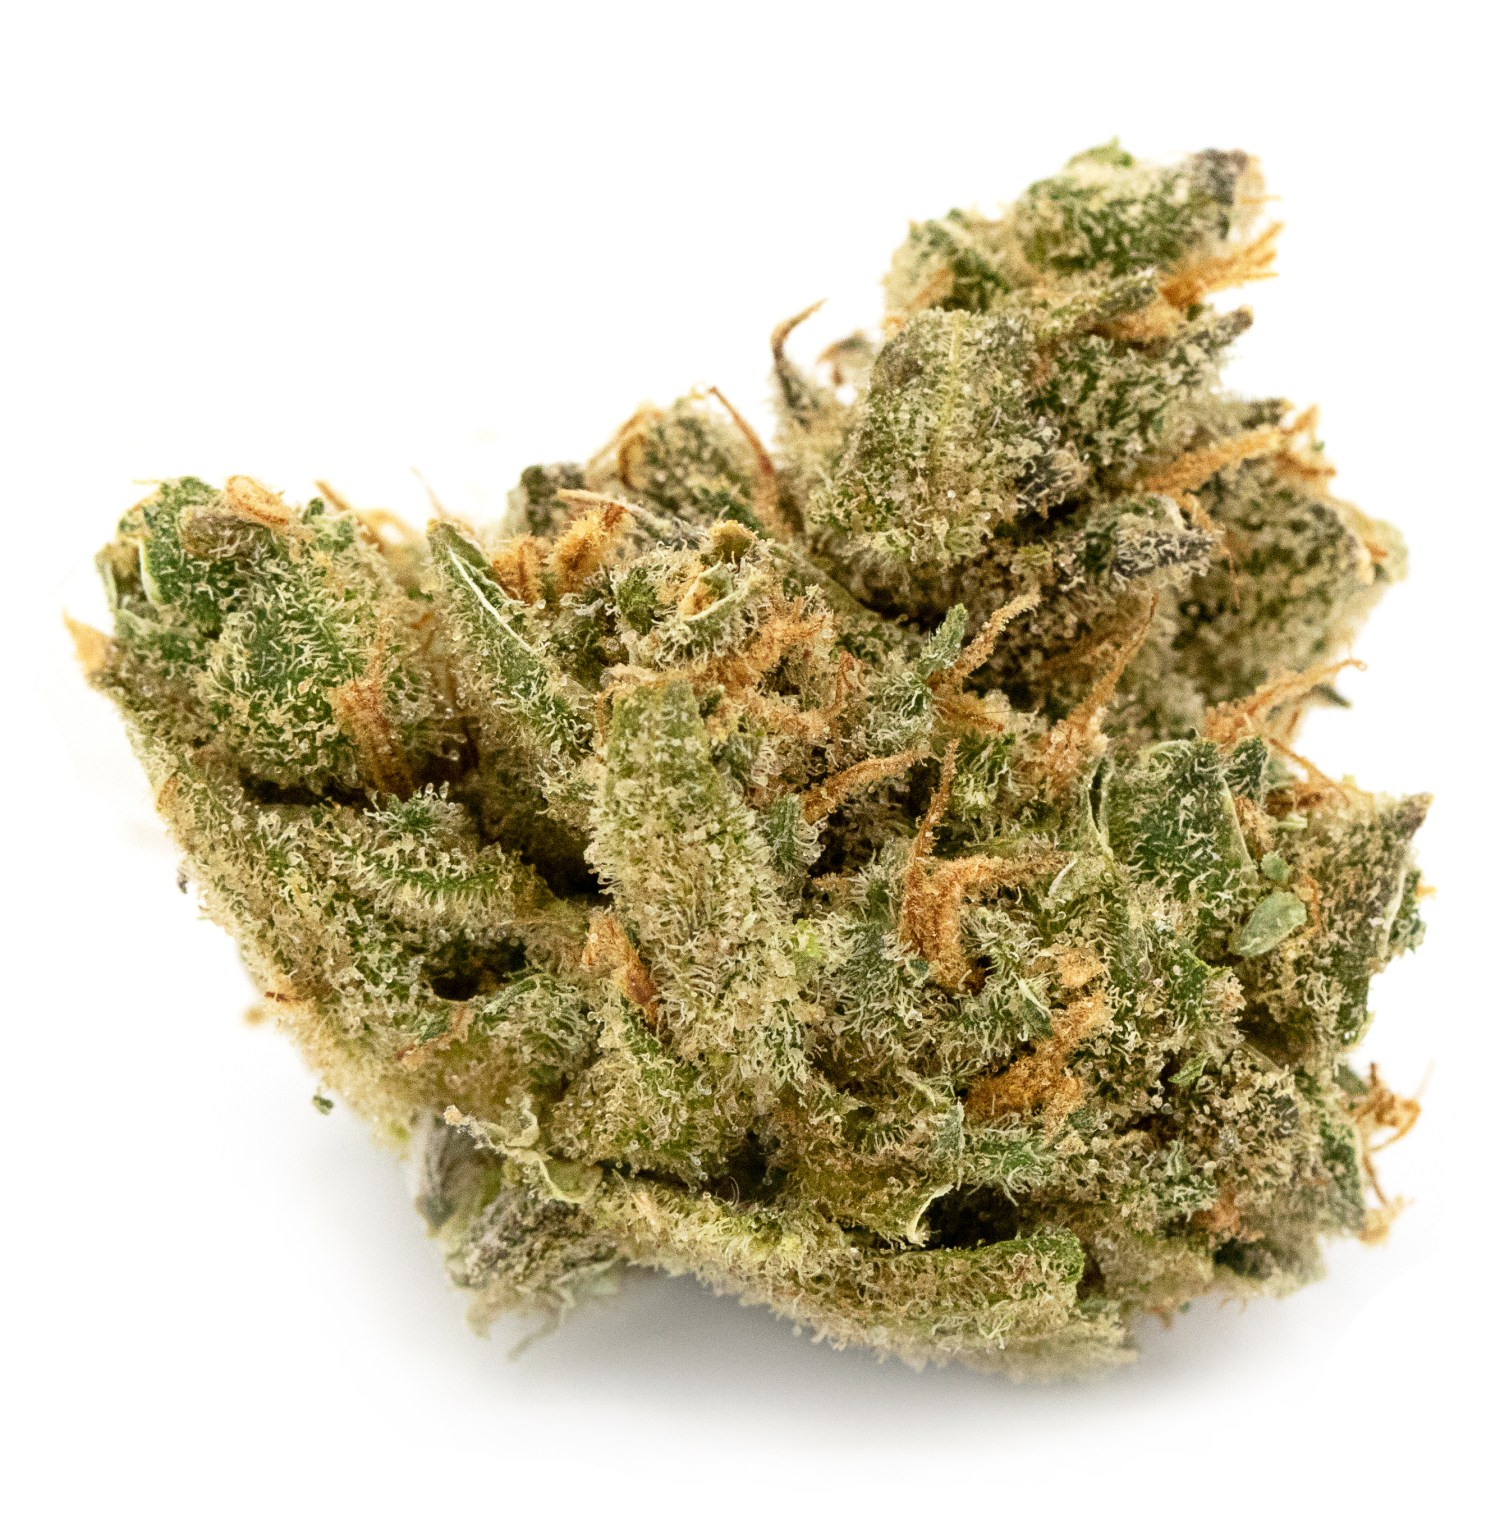 Medical Marijuana can unlock new levels of relief, for the right people. Find out if medical marijuana is for you.